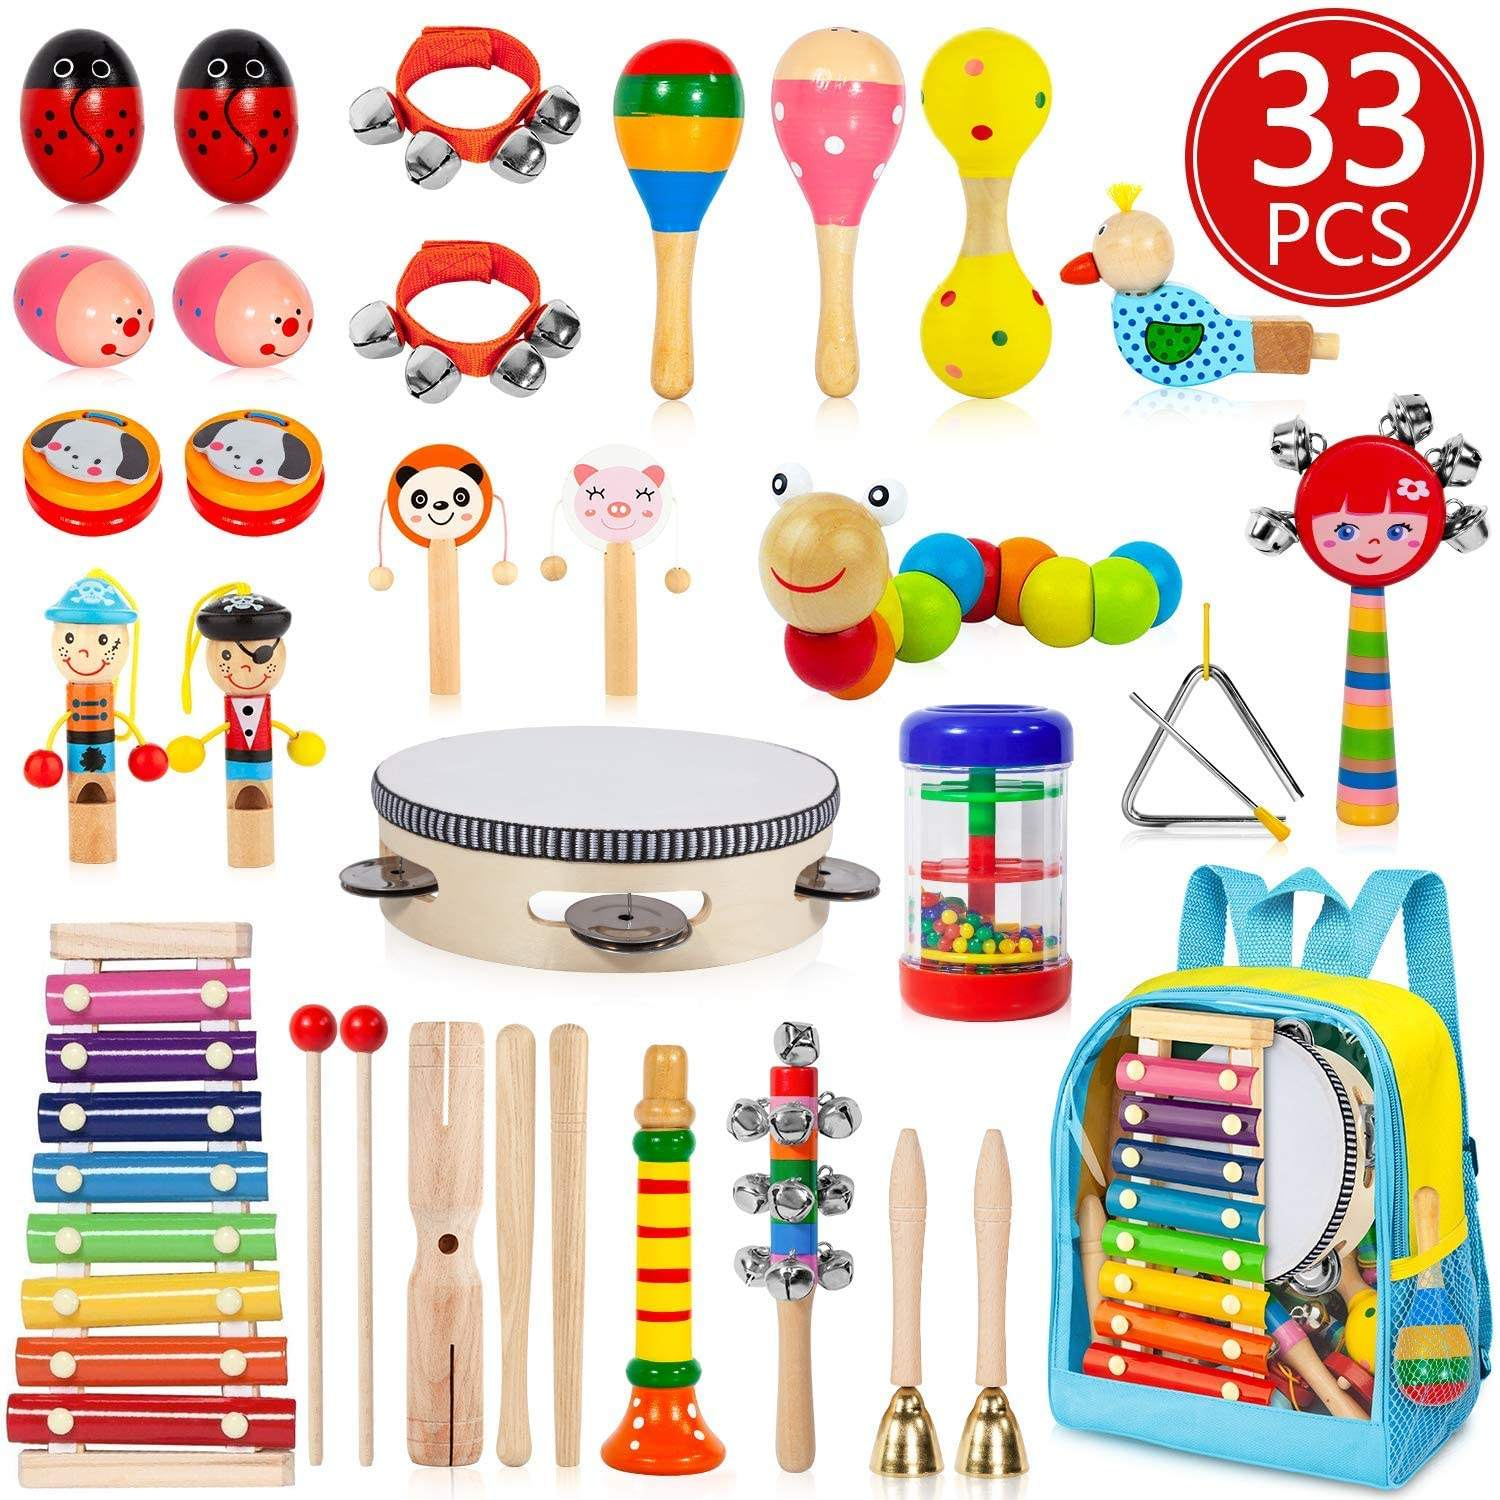 Kids Musical Instruments, 33 PCS 20 Types Wooden Instruments Tambourine Xylophone Toys for Kids Children, Preschool Educational